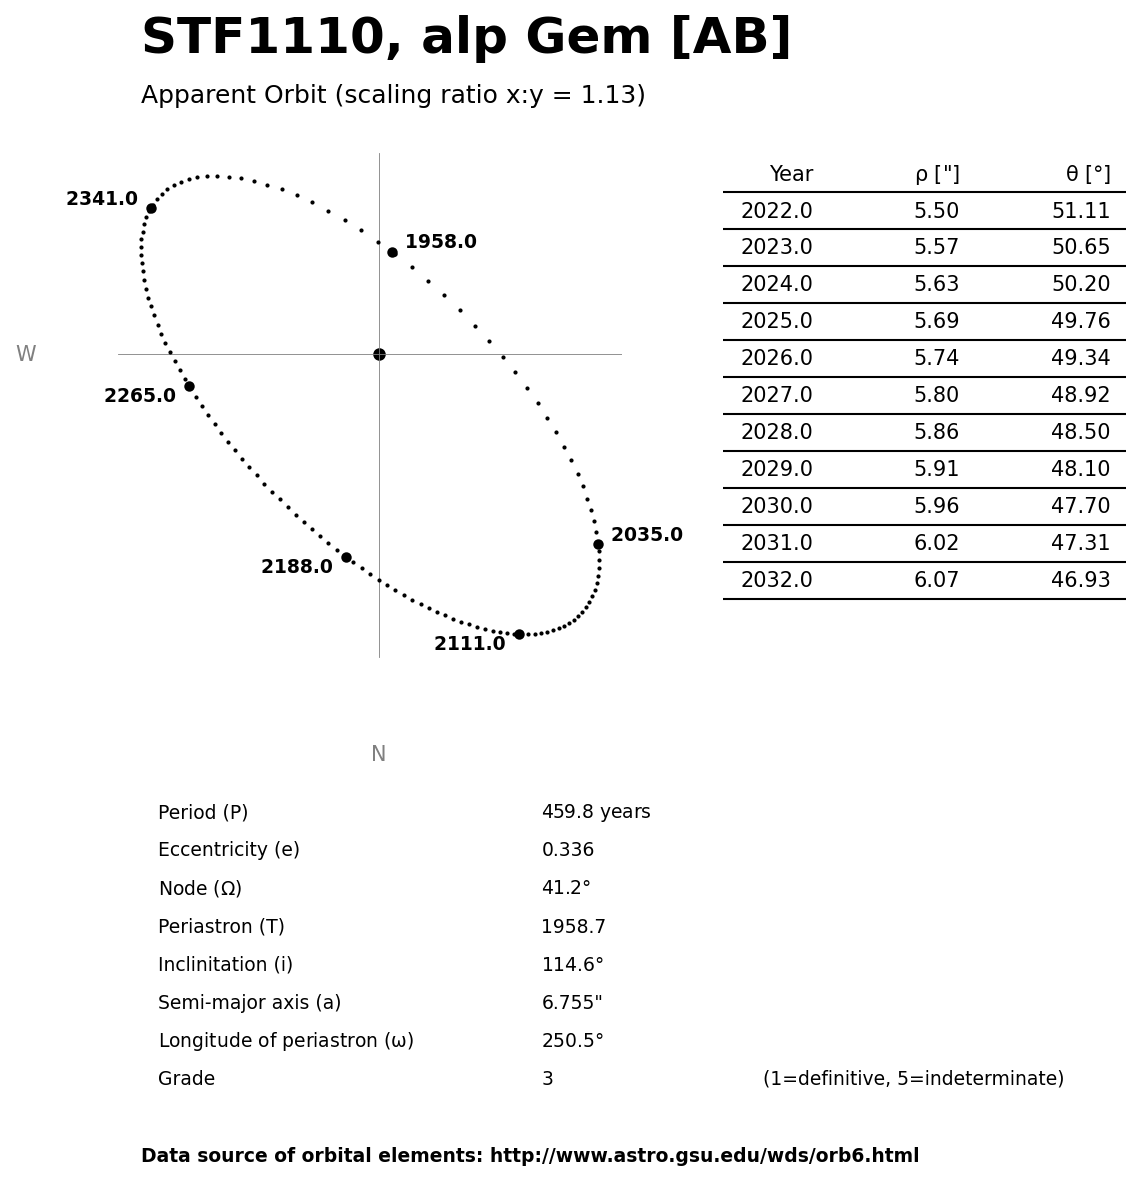 ../images/binary-star-orbits/STF1110-AB-orbit.jpg